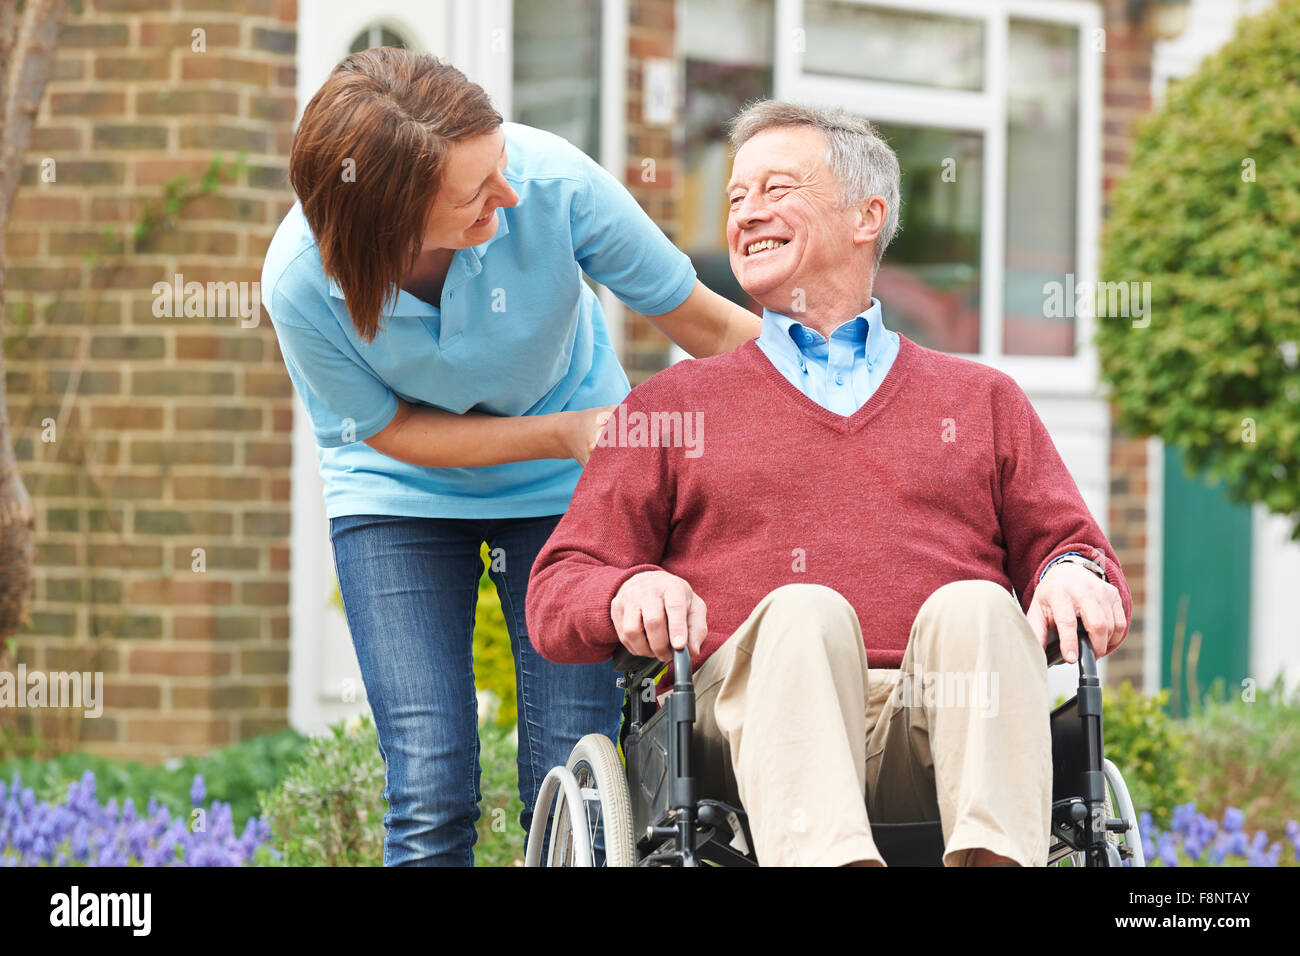 Carer With Senior Man In Wheelchair - Stock Image